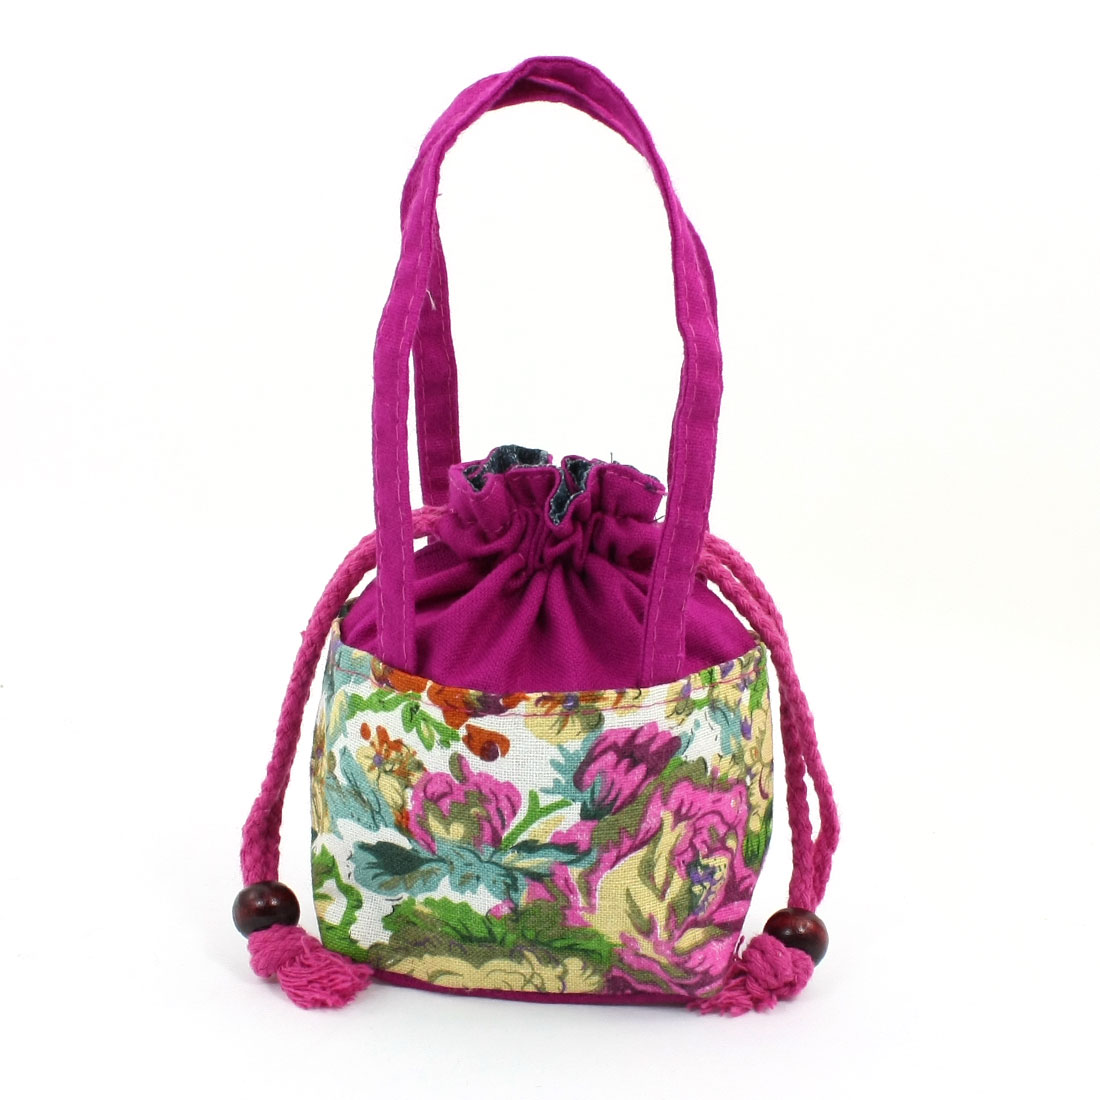 Lady Flower Pattern Fuchsia Coin Change Drawstring Purse Tote Bag